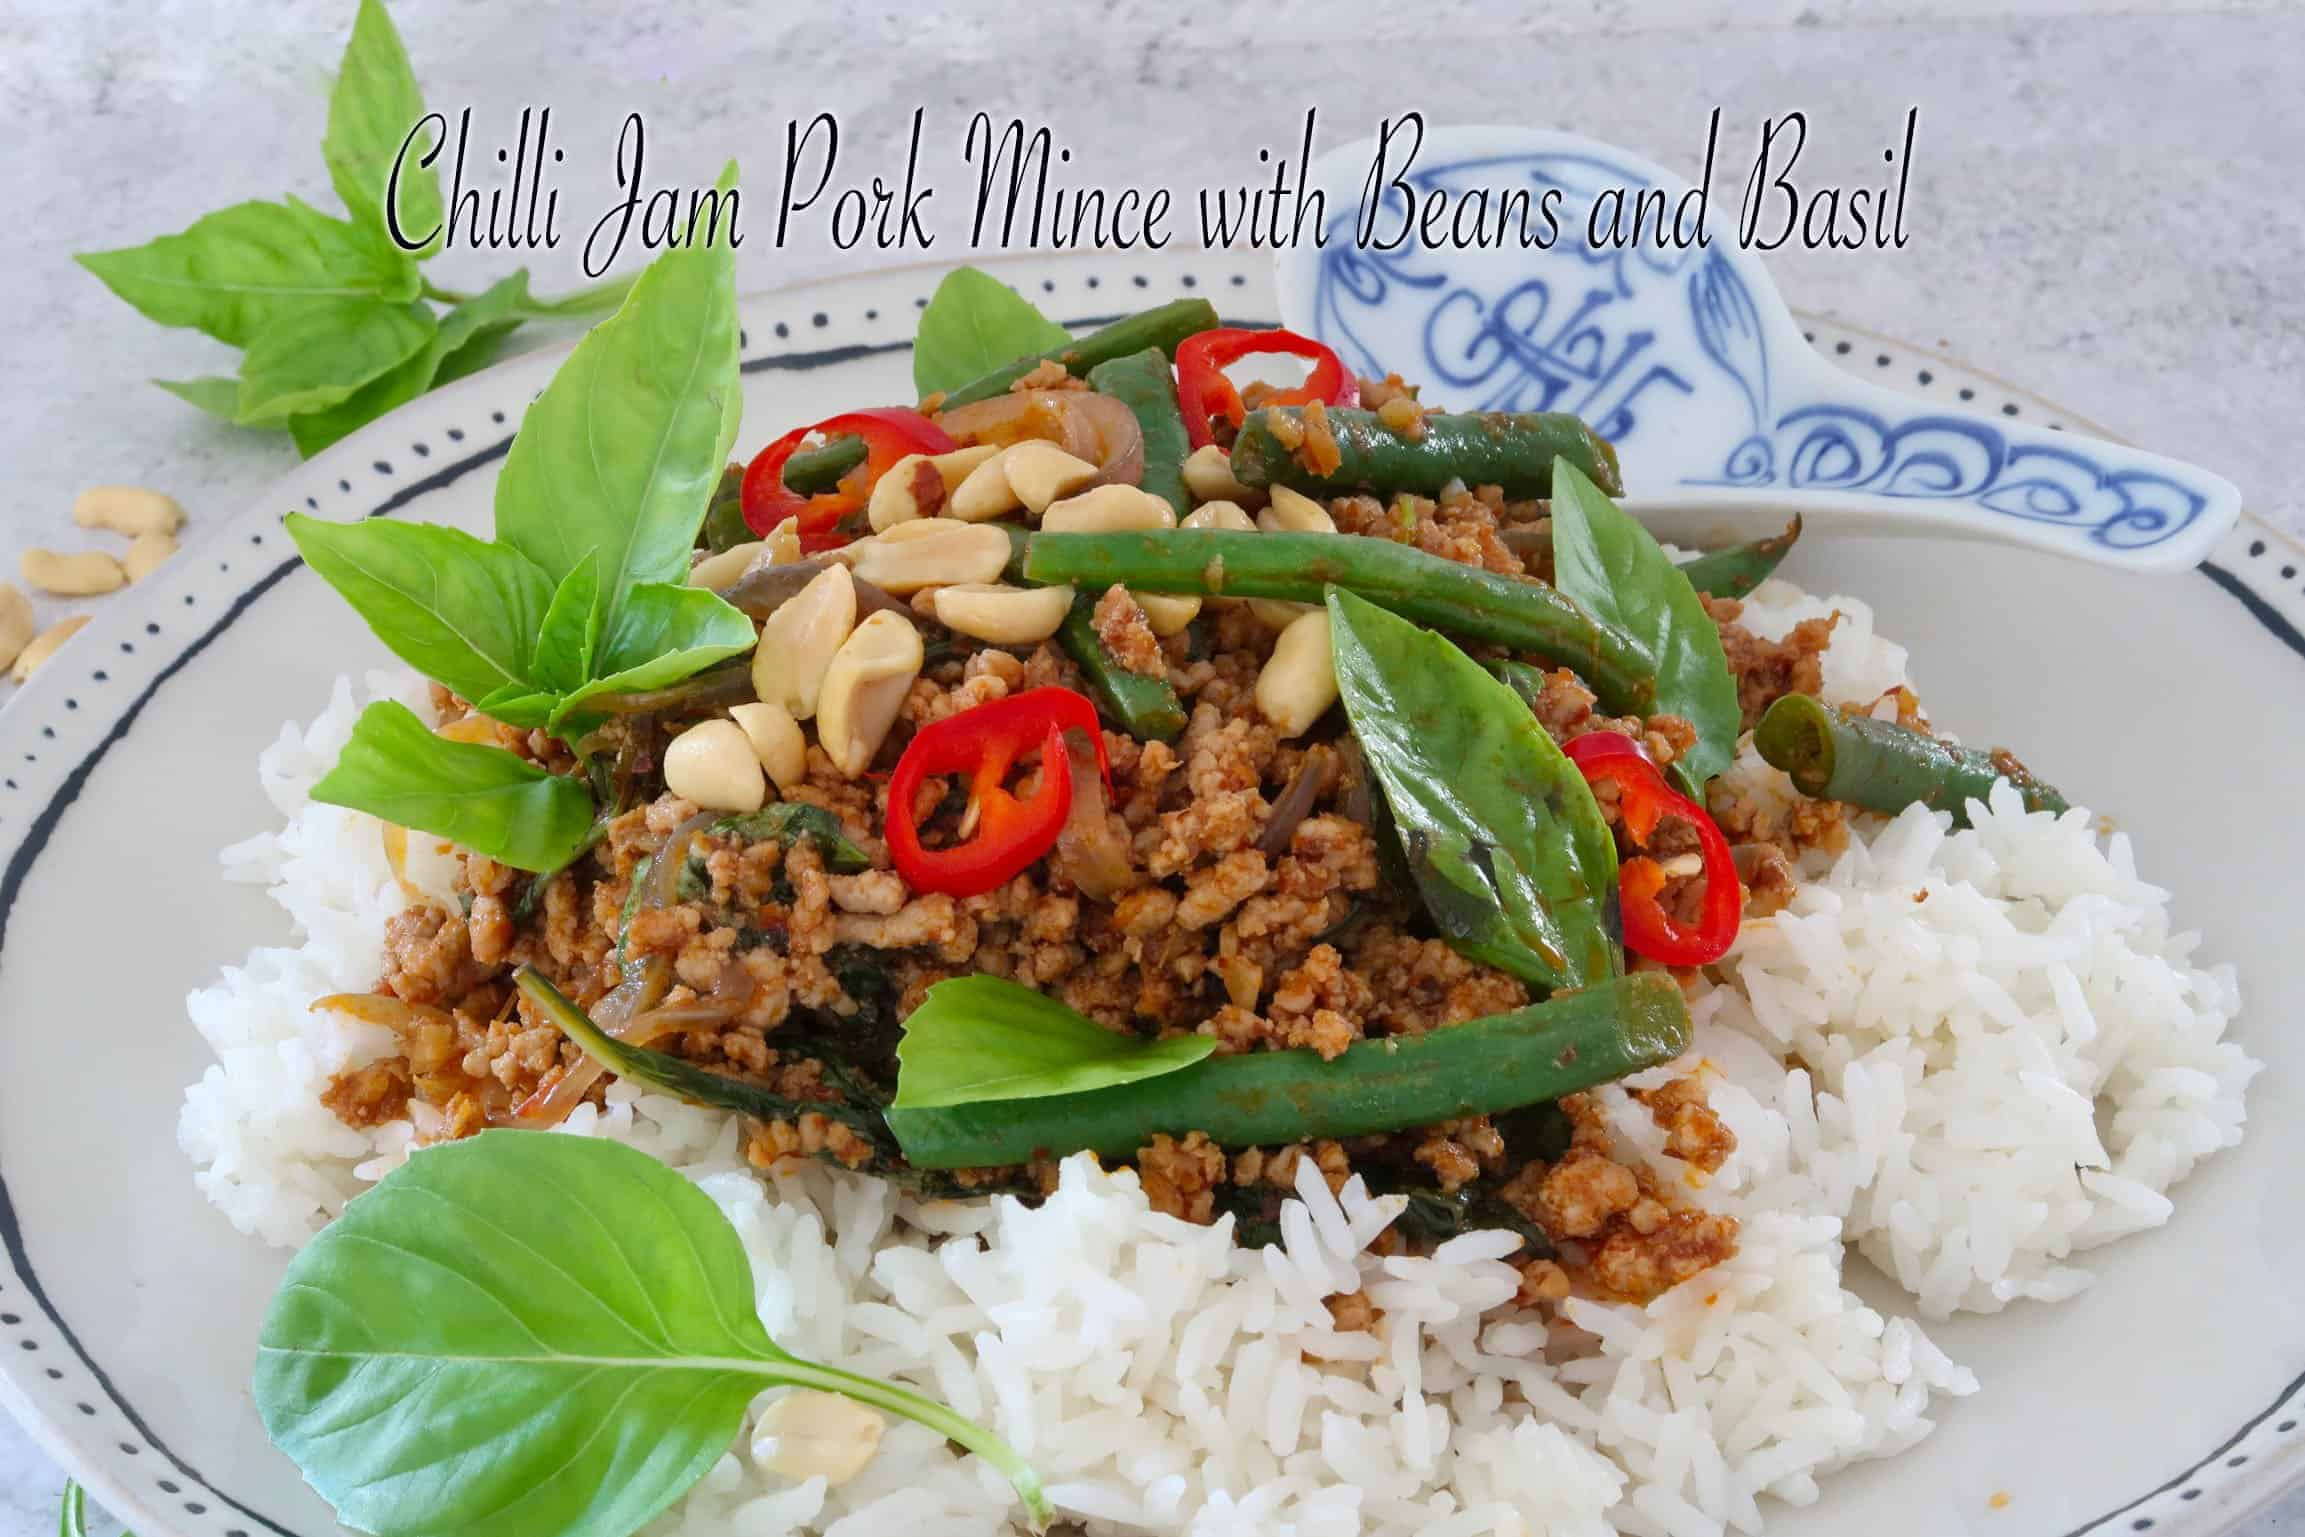 Chilli Jam Pork Mince with Beans and Basil